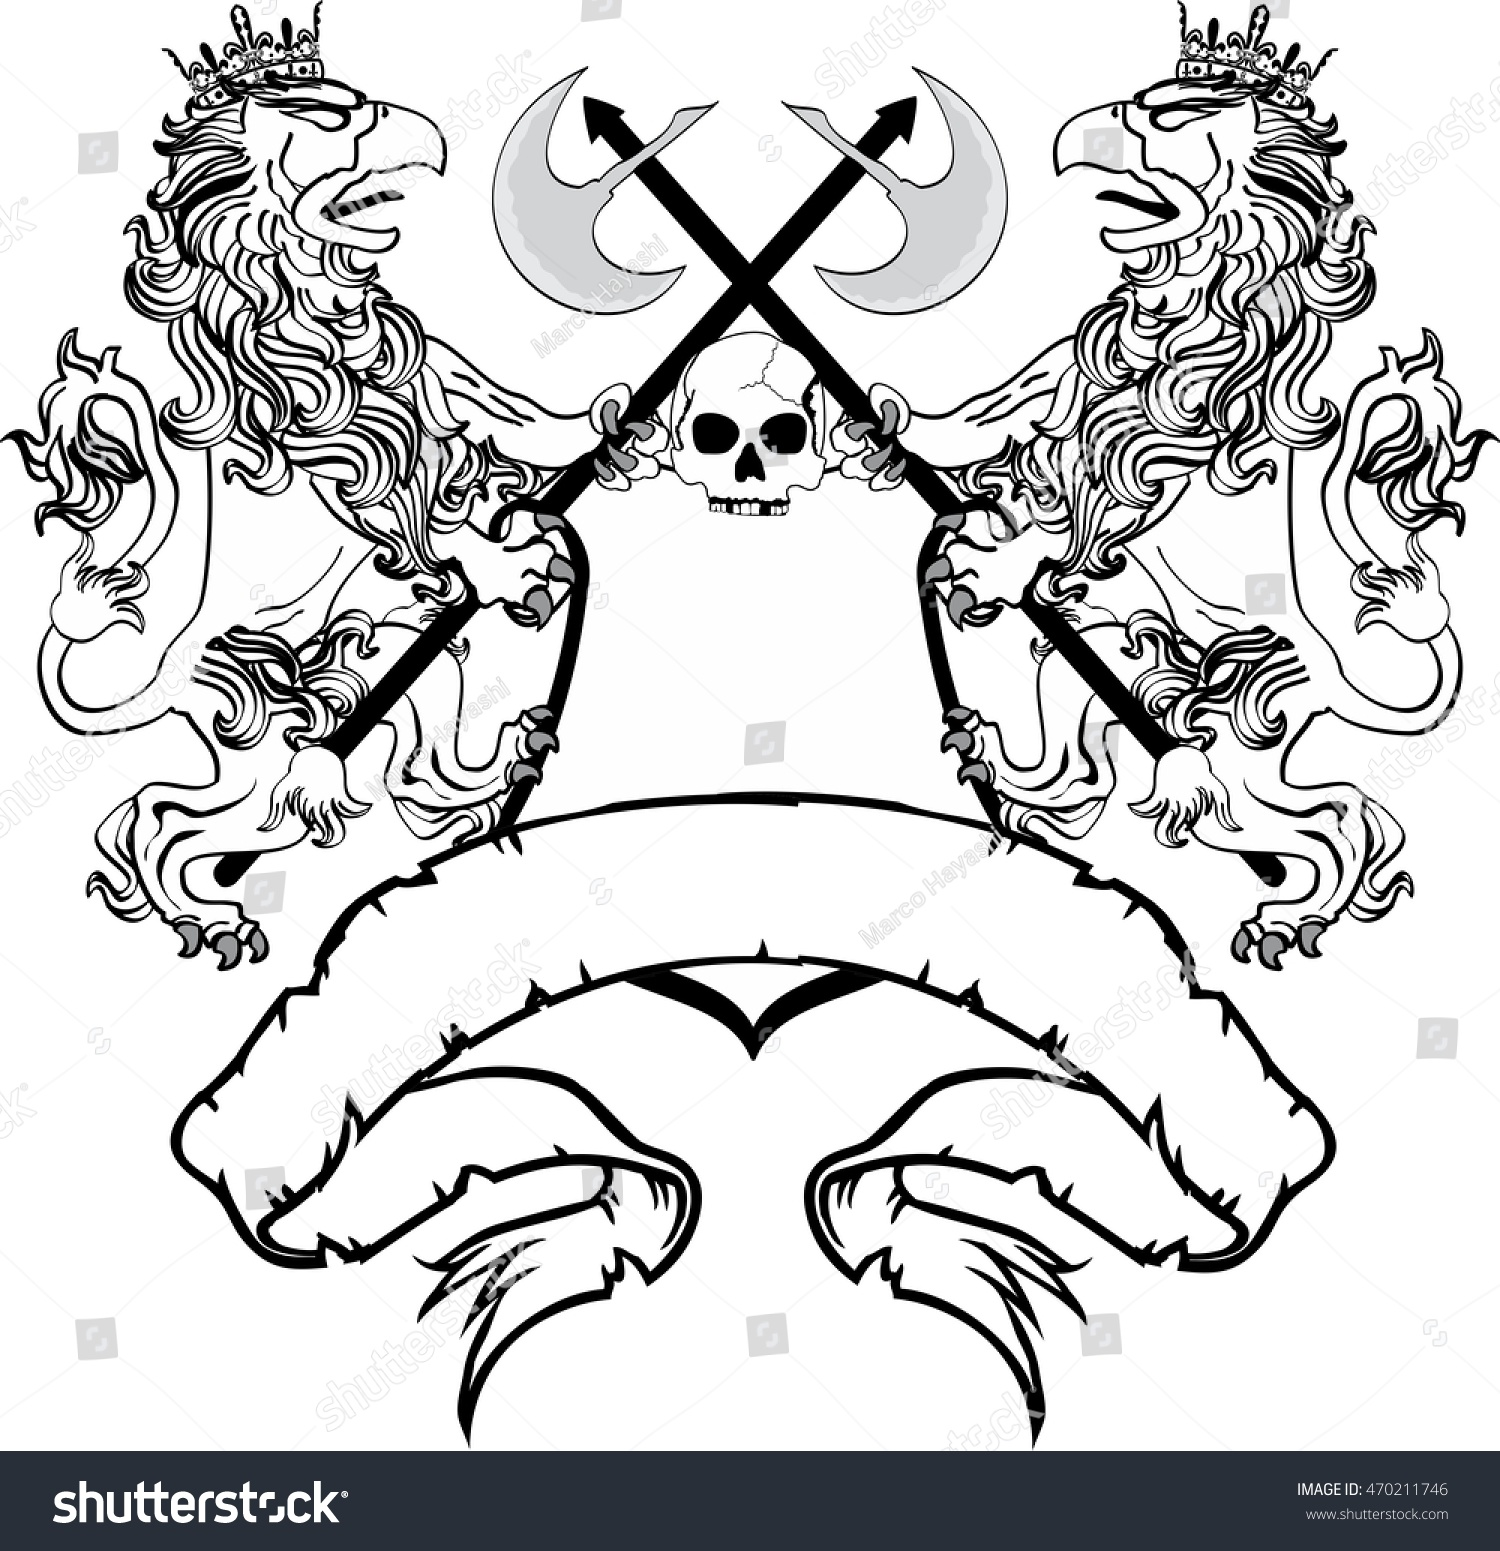 How to breed heraldic dragon - Heraldic Griffin Crest Coat Of Arms Tattoo Very Easy To Edit